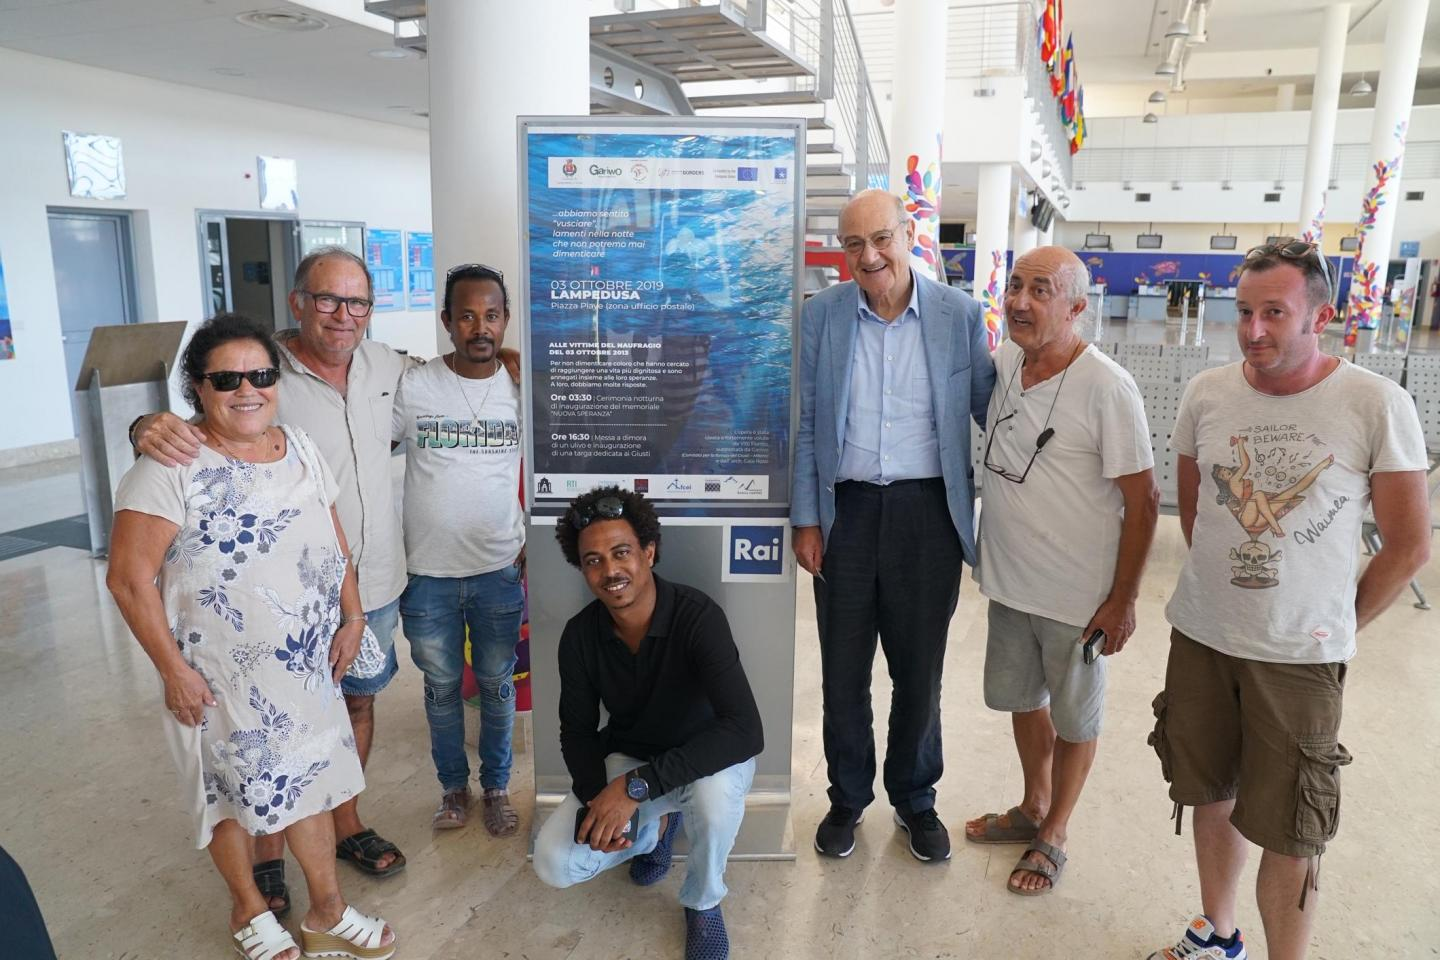 In Lampedusa to commemorate the  3 October 2013. In the photo: the Righteous Costantino Baratta and Vito Fiorino, Gabriele Nissim, president of Gariwo, and some of the boys saved from the shipwreck